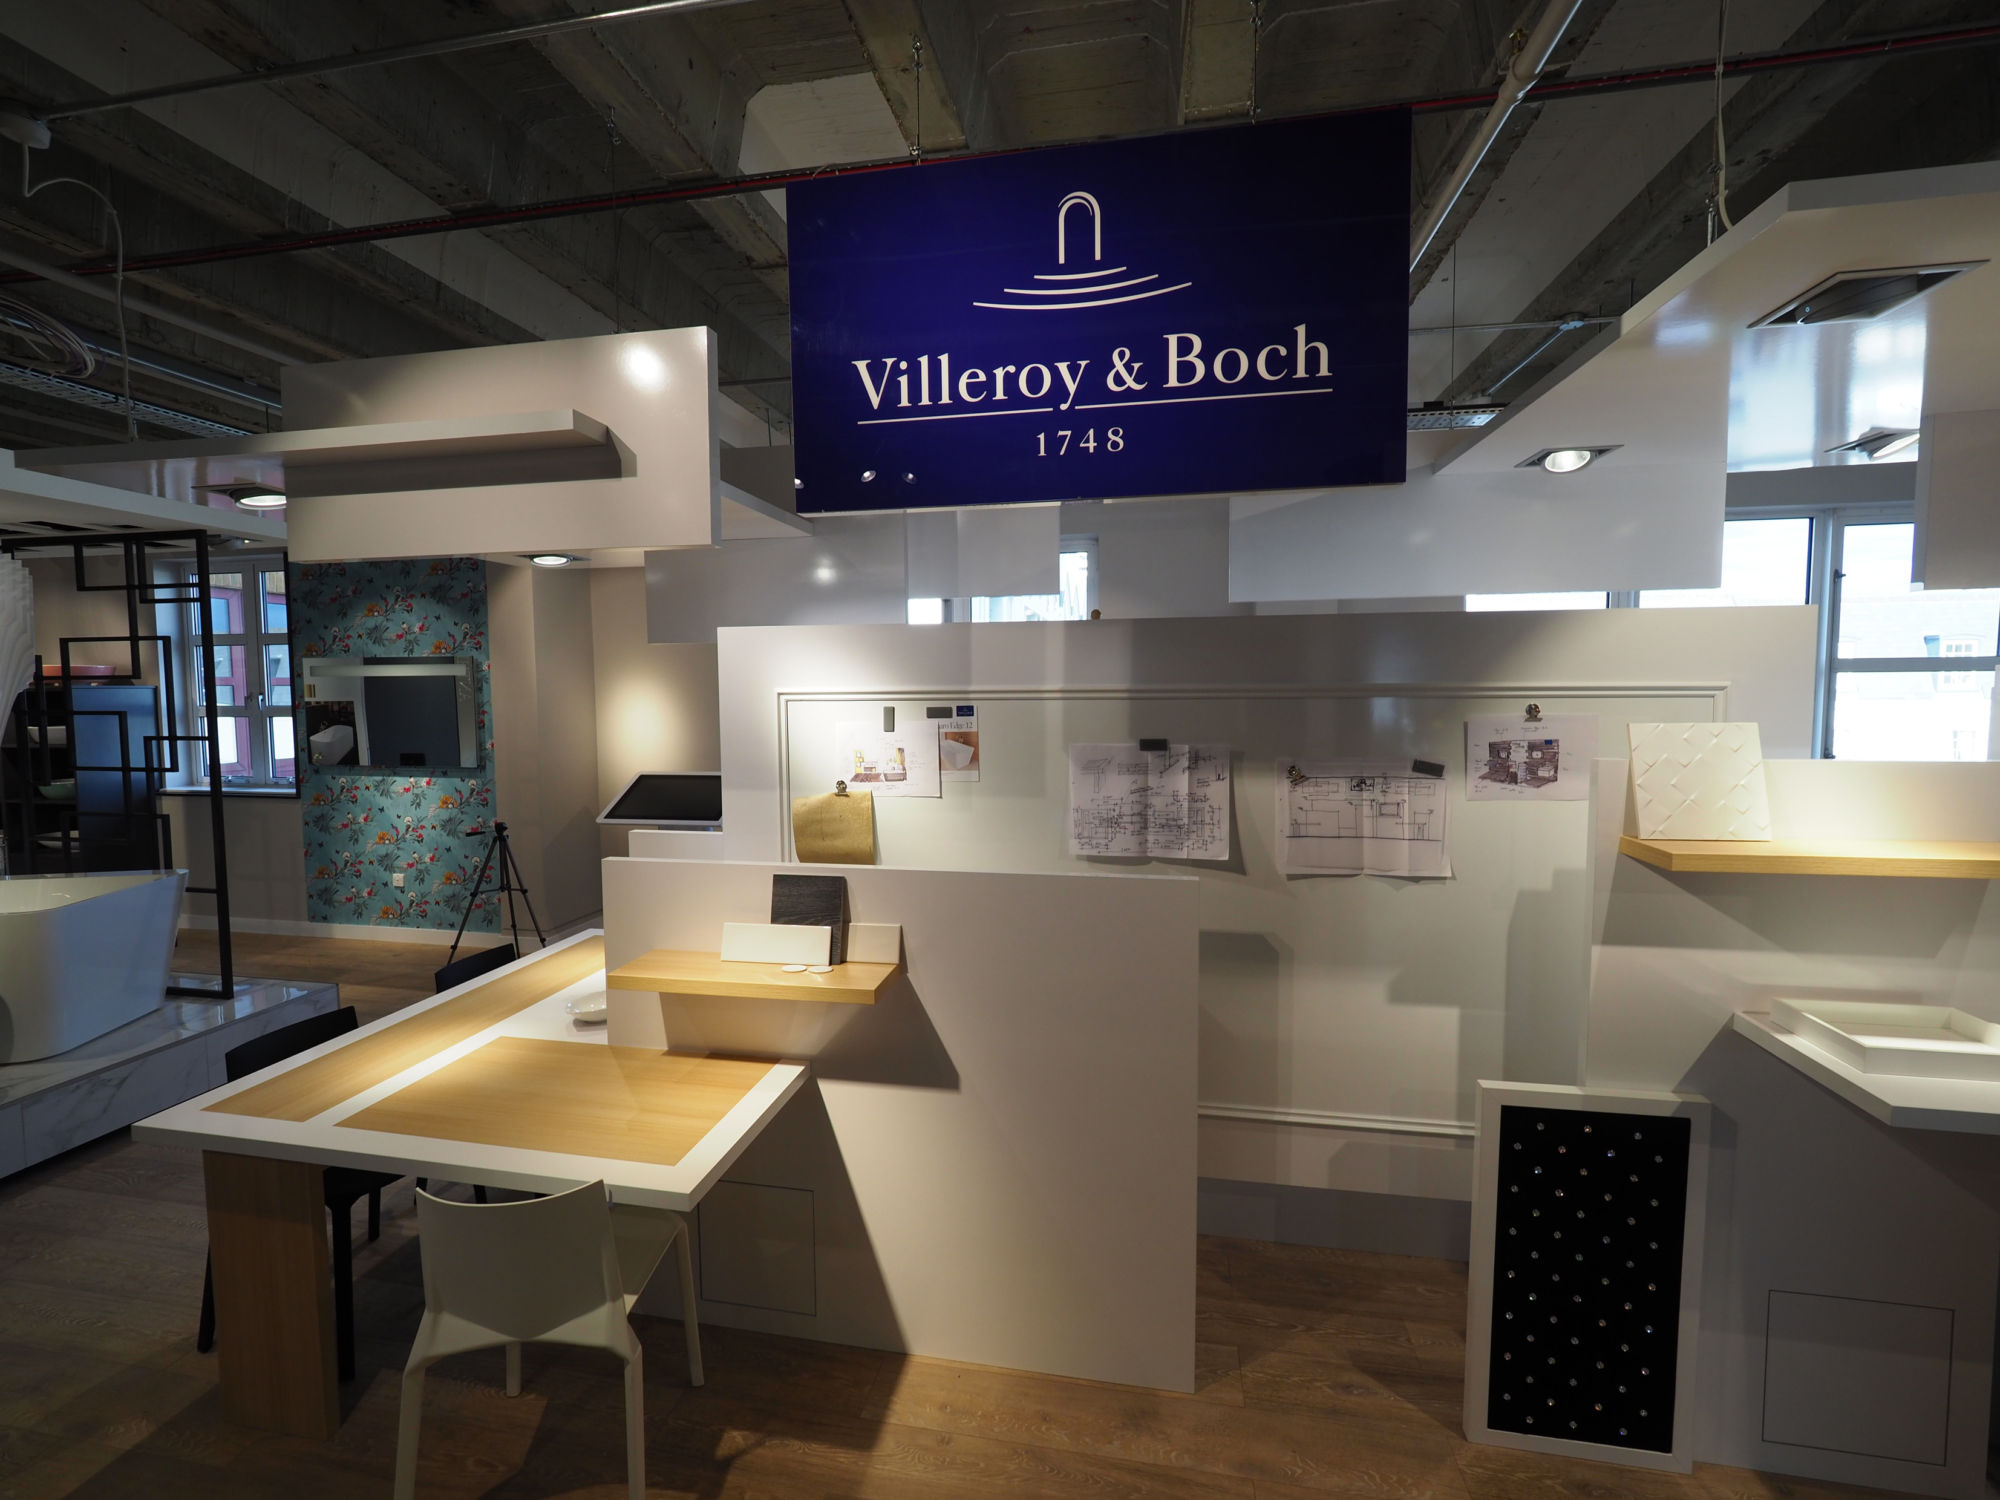 Villeroy U0026 Boch To Open New Offices And Customer Meeting Point At Design  Centre, Chelsea Harbour